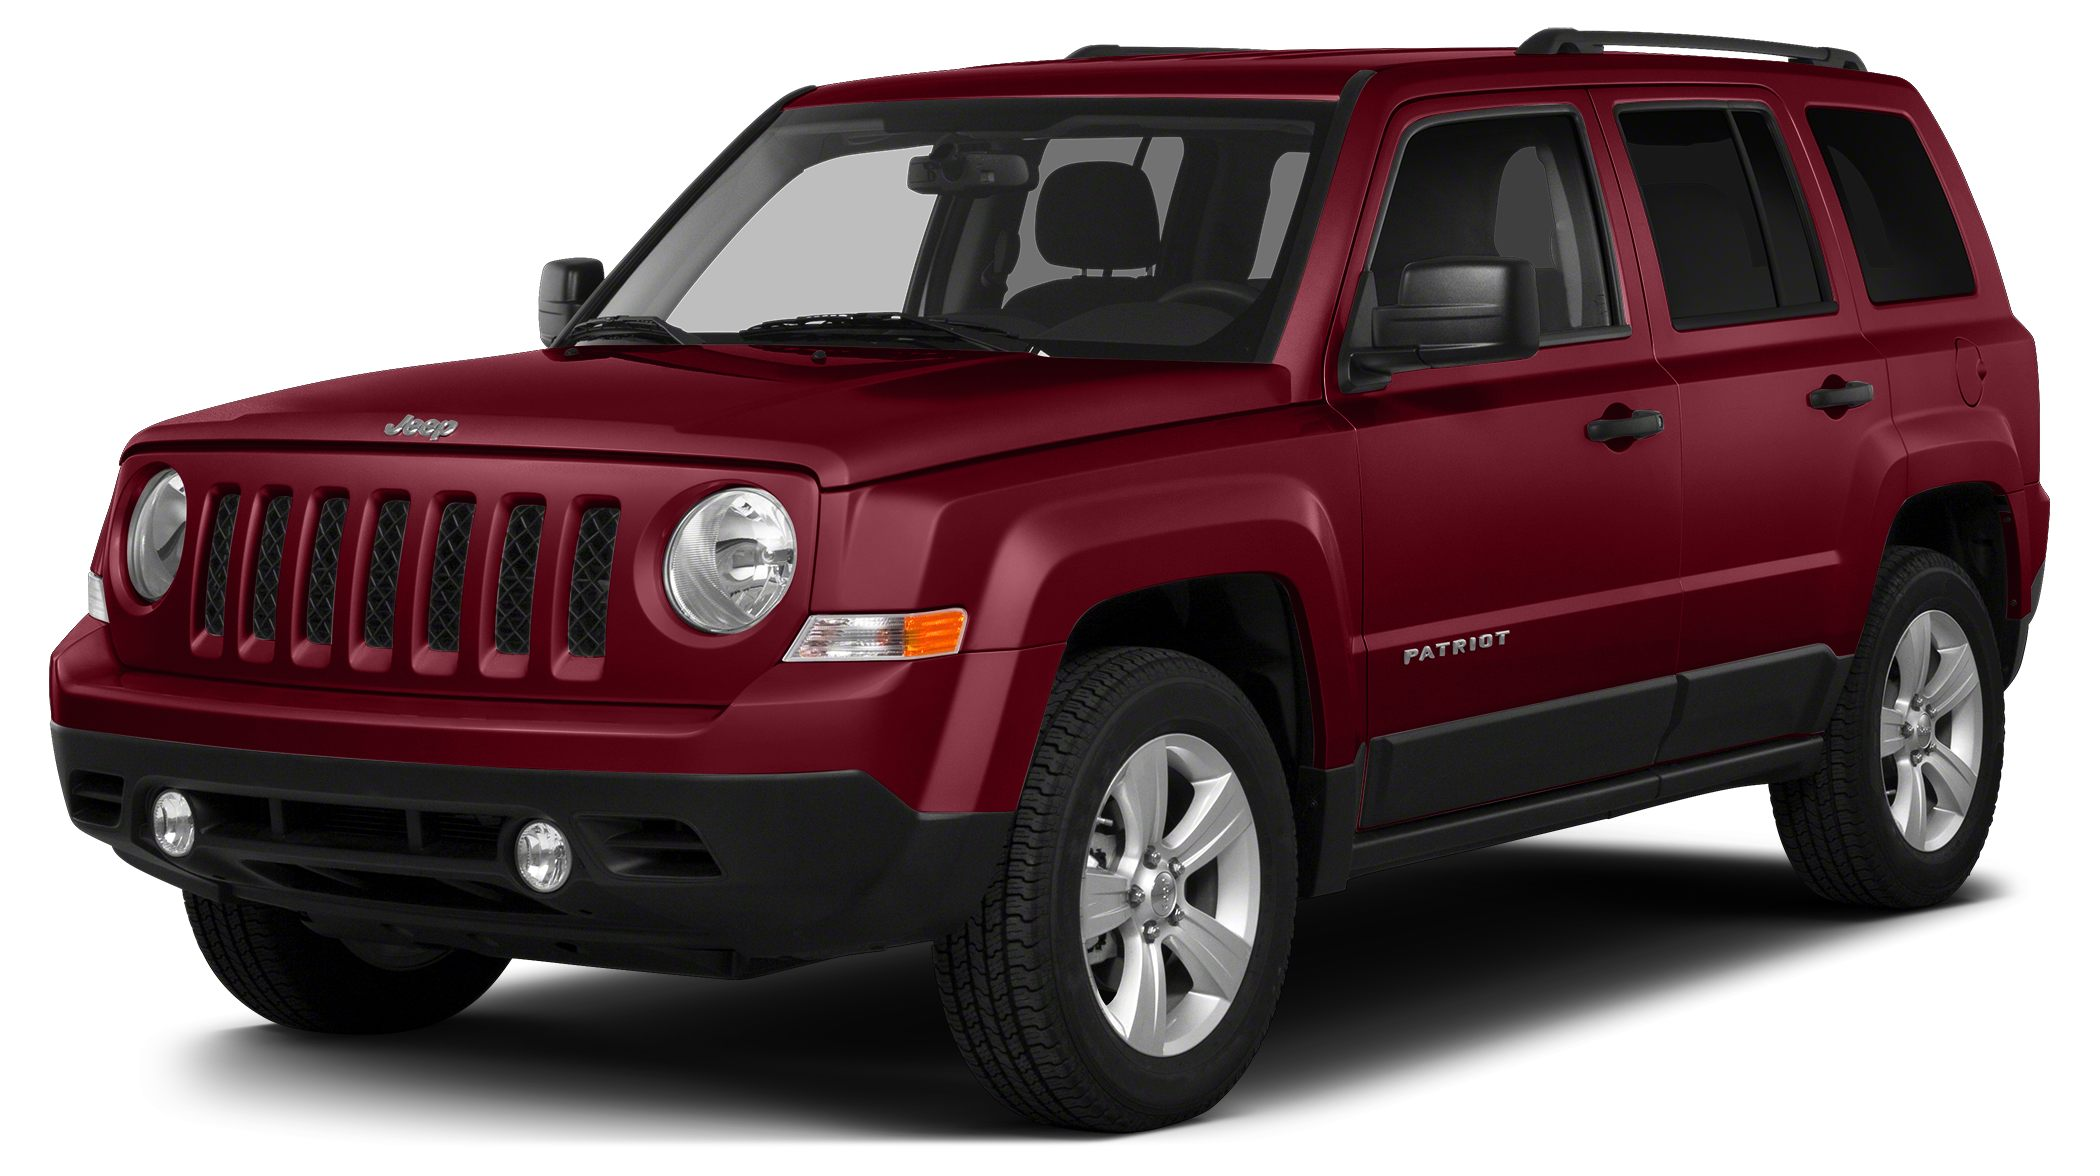 2016 Jeep Patriot Sport Patriot Sport ABS brakes Electronic Stability Control Low tire pressure